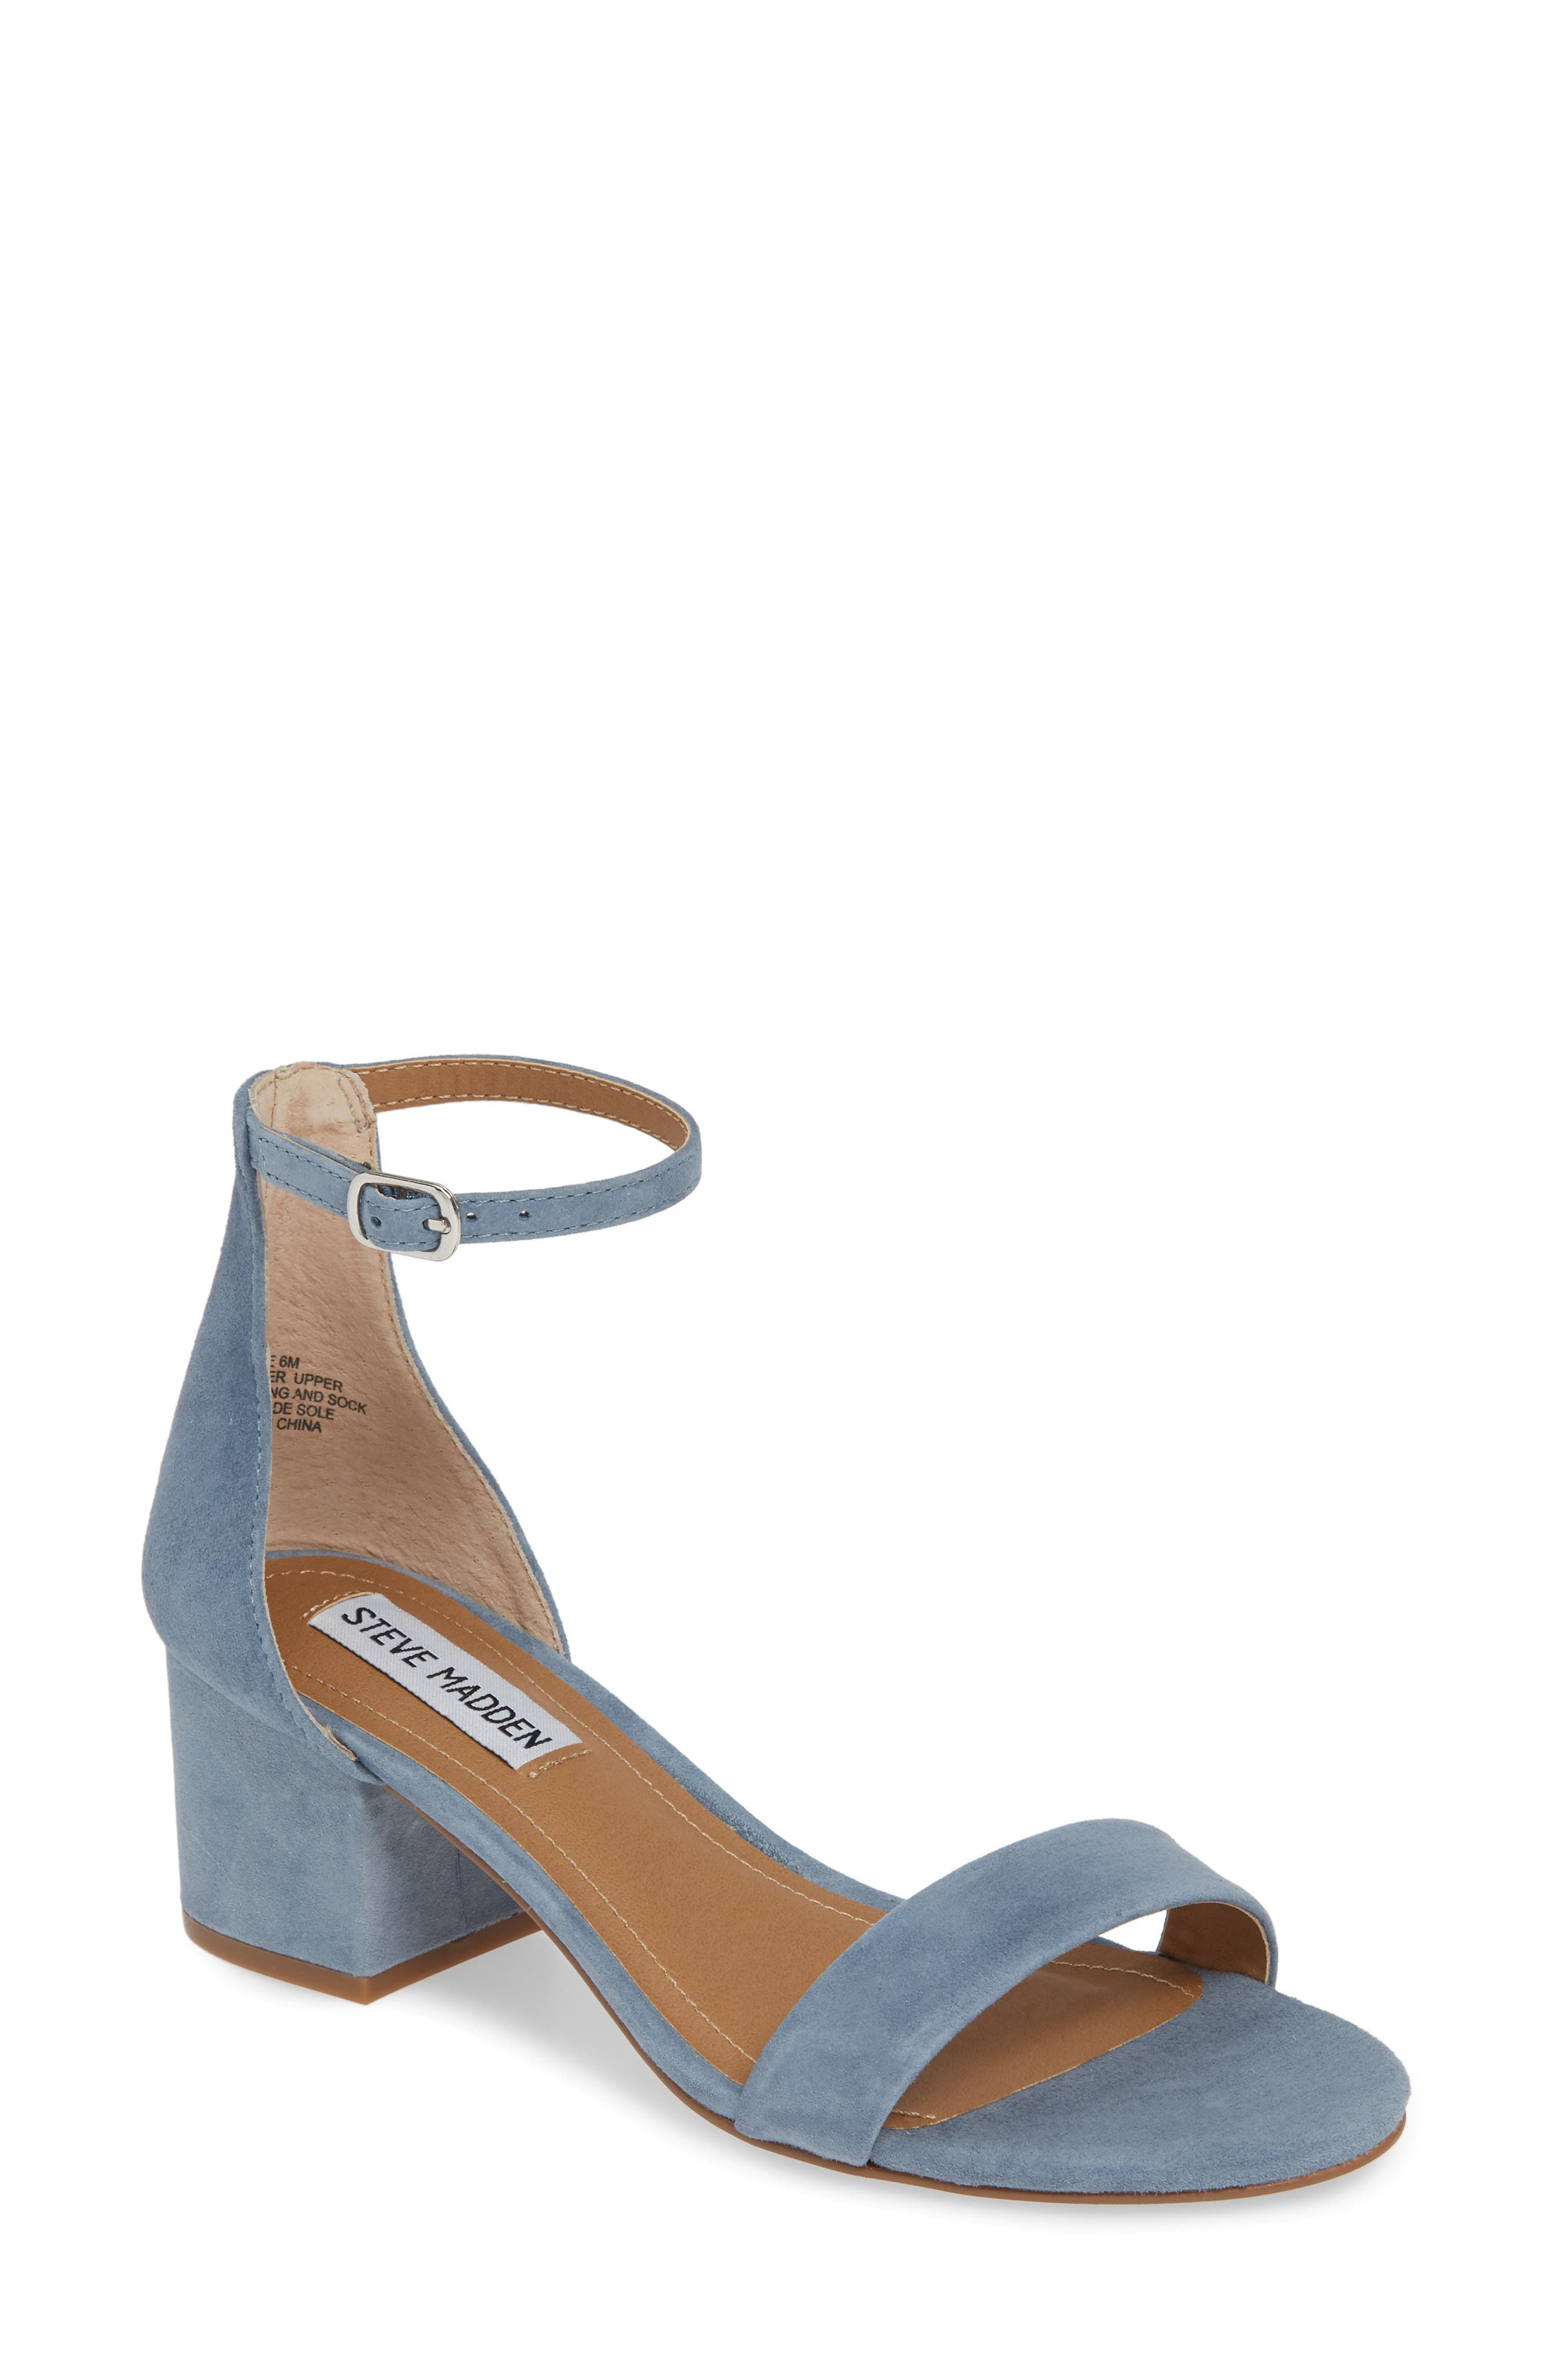 ,                             Irenee Ankle Strap Sandal,                             Main thumbnail 72, color,                             483